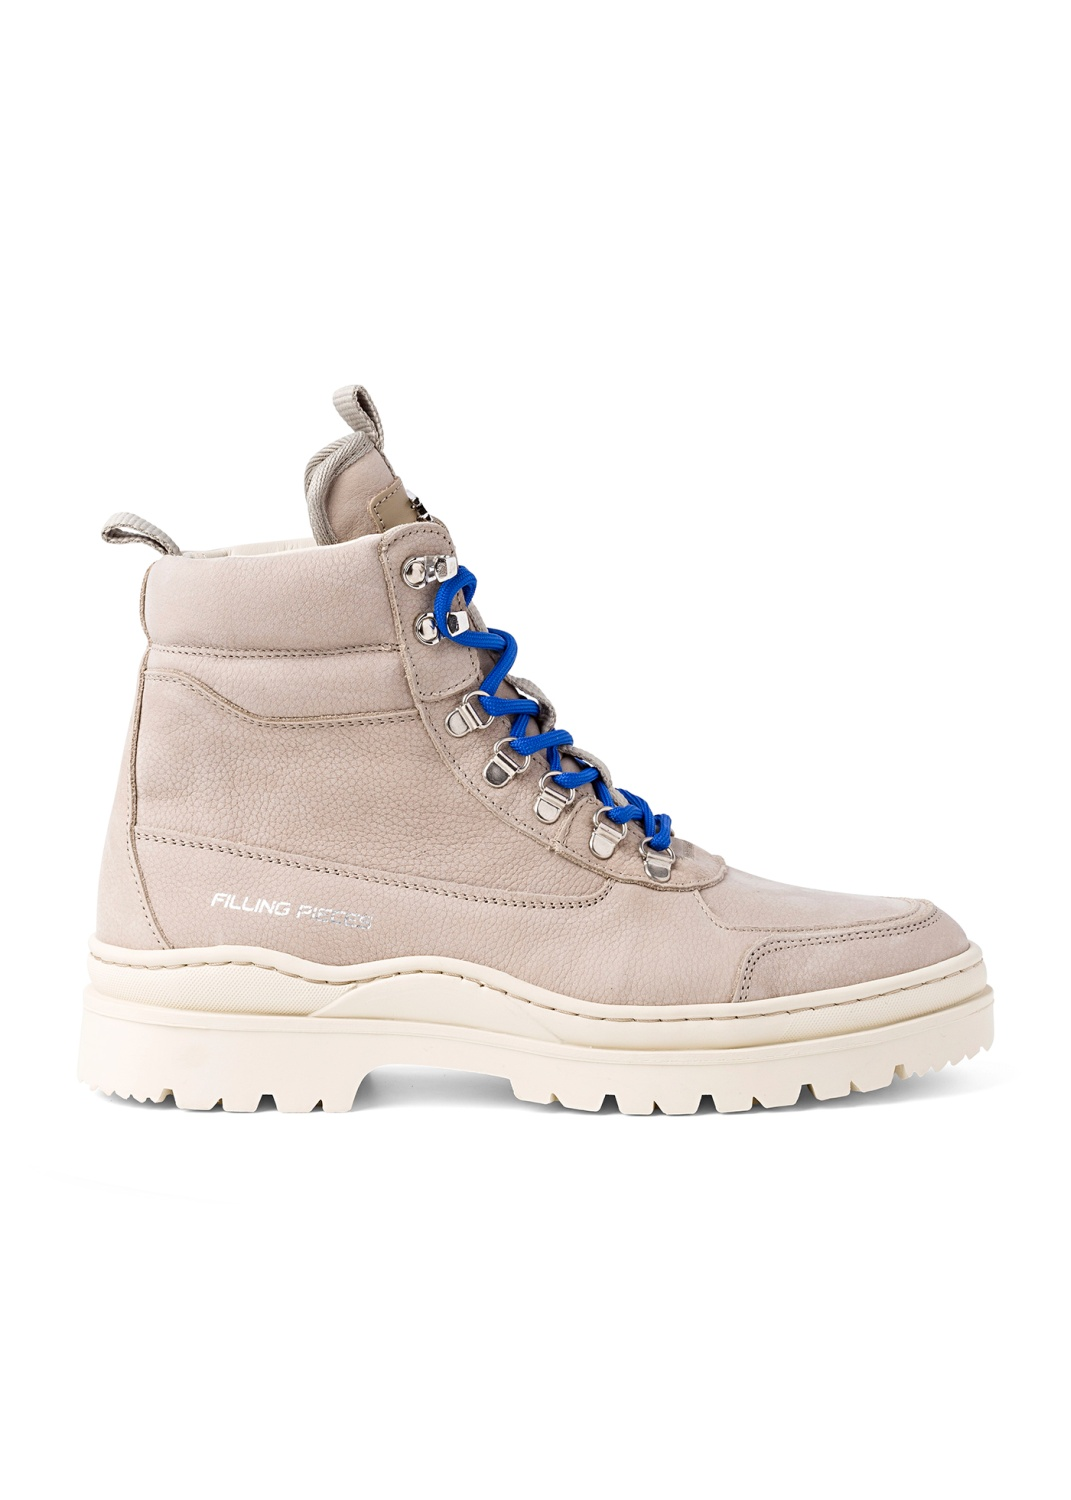 Mountain Boot Rock Beige image number 0